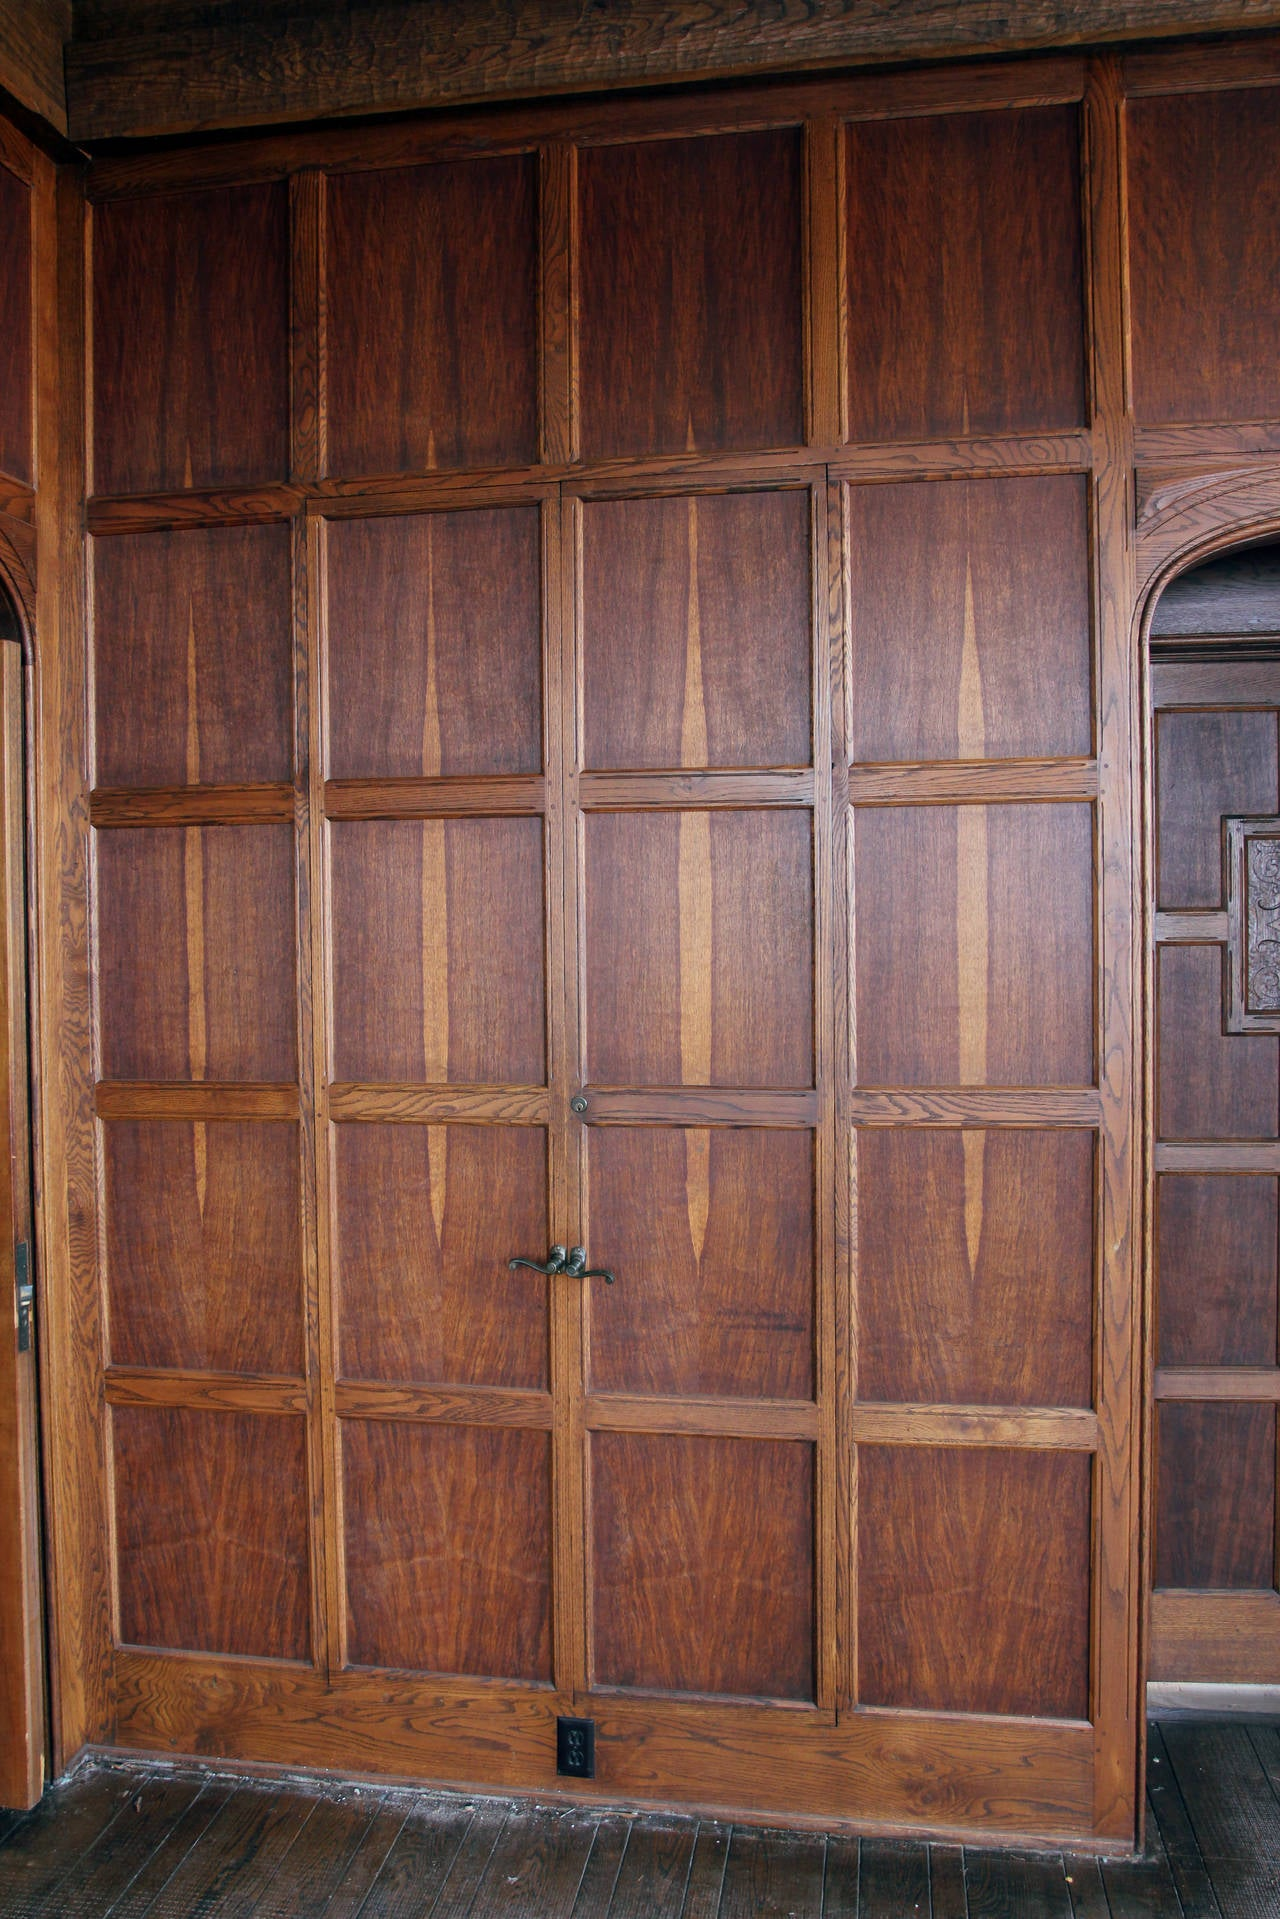 Rooms With Wood Panel Walls: 1905 Tudor Style English Oak Paneled Room From Two Rivers